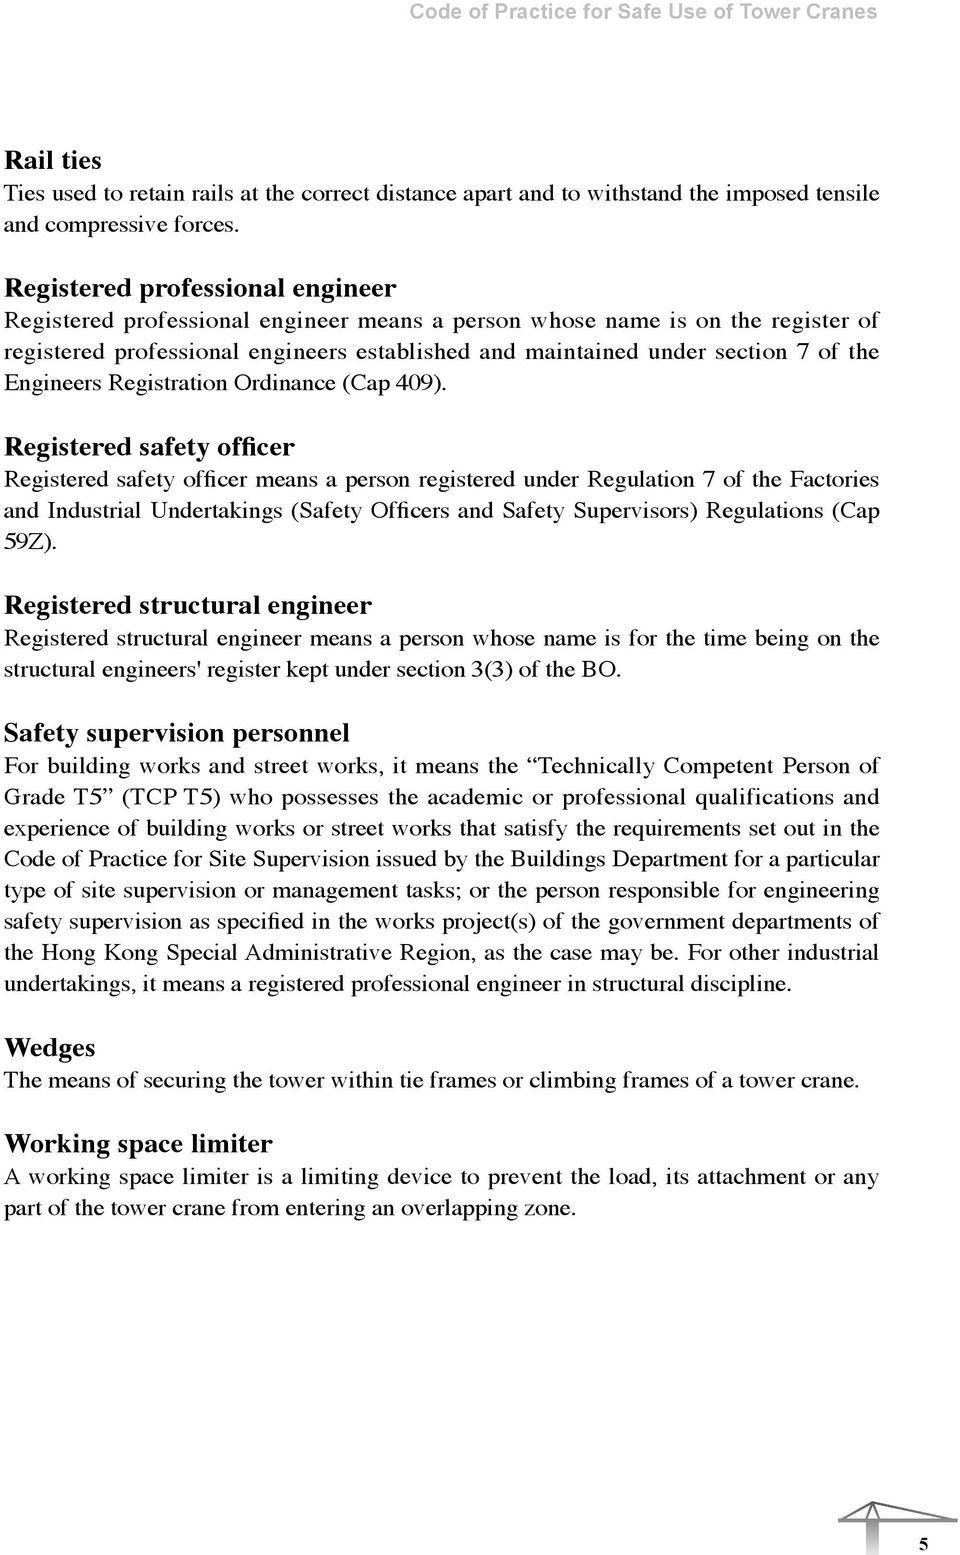 Code of Practice for Safe Use of Tower Cranes  October 2011